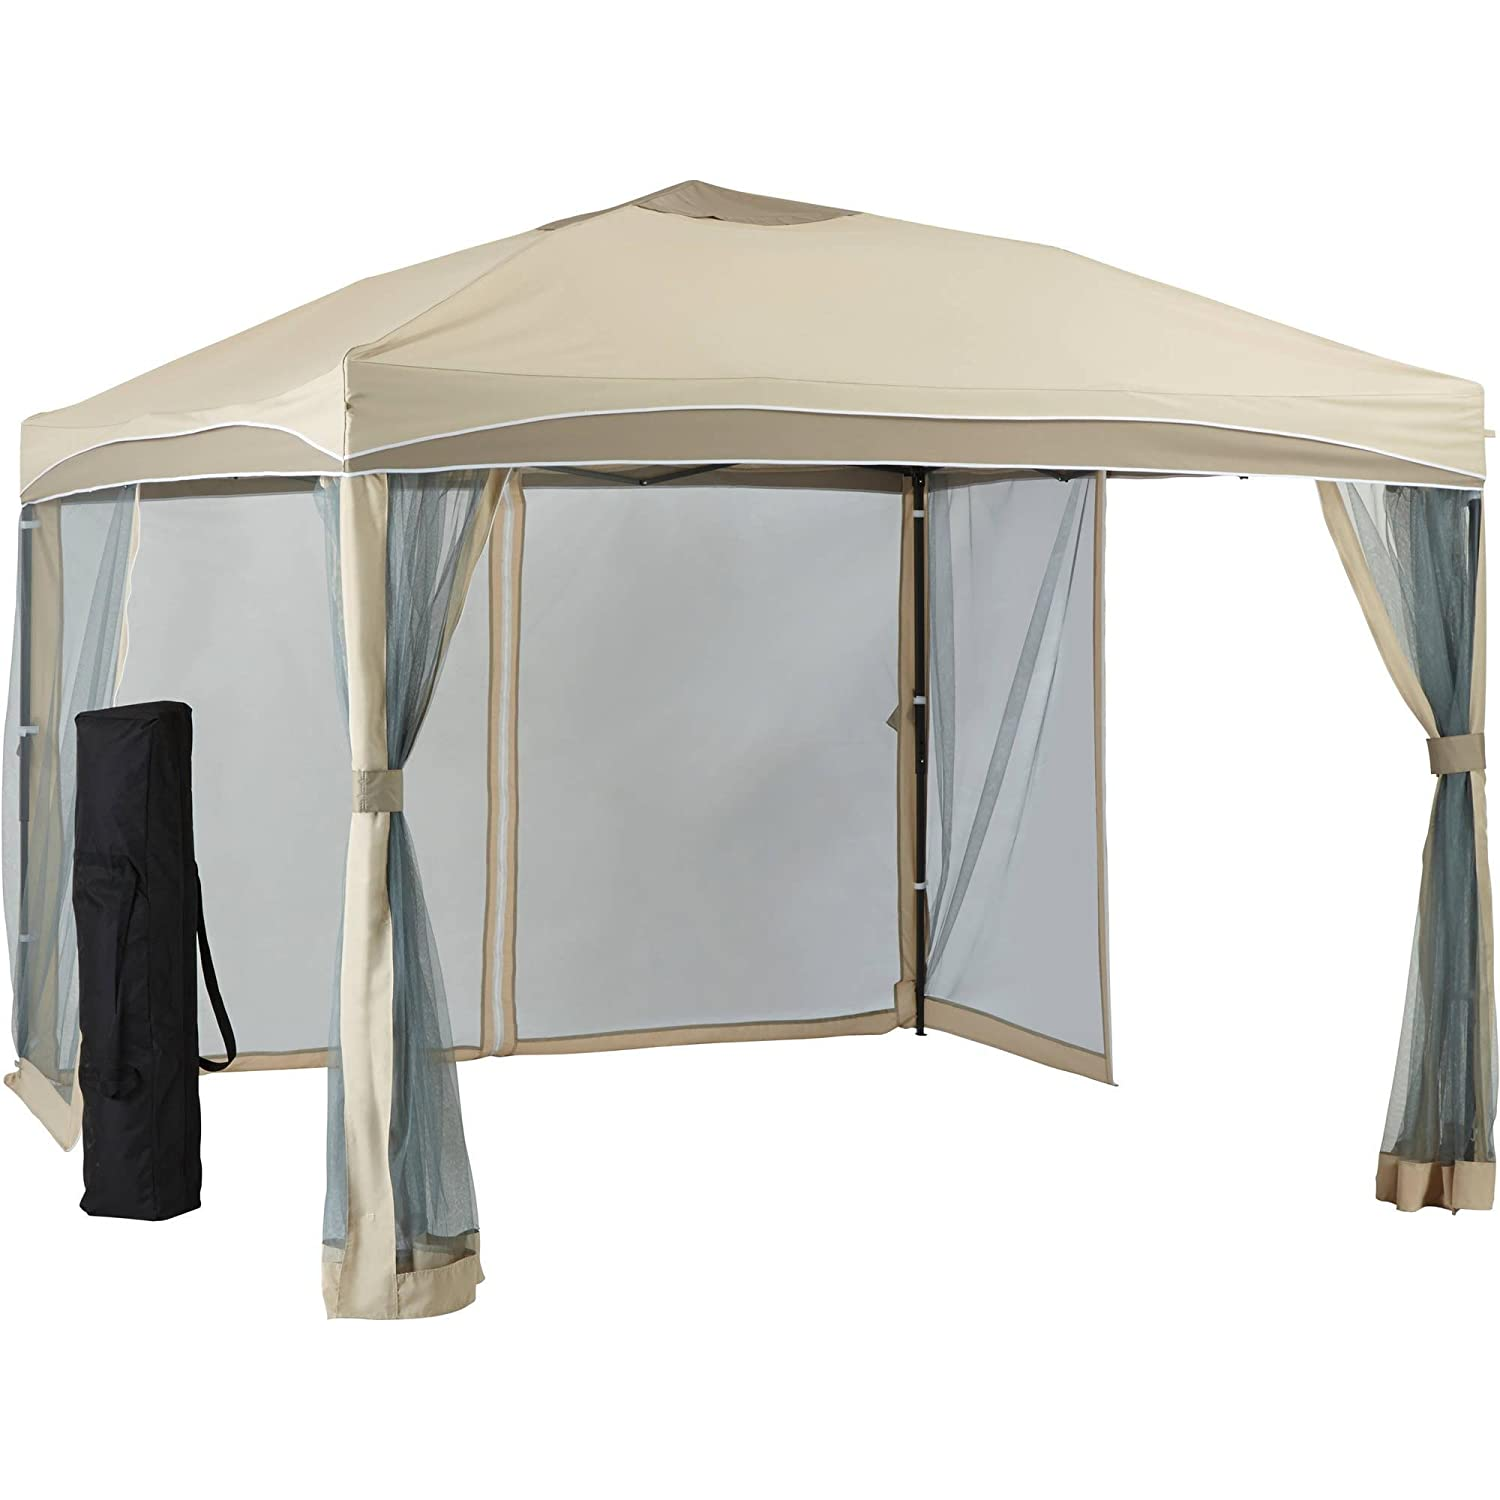 Amazon.com : Better Homes And Gardens Lawrence Portable Patio Gazebo, 10u0027 X  10u0027 : Garden U0026 Outdoor